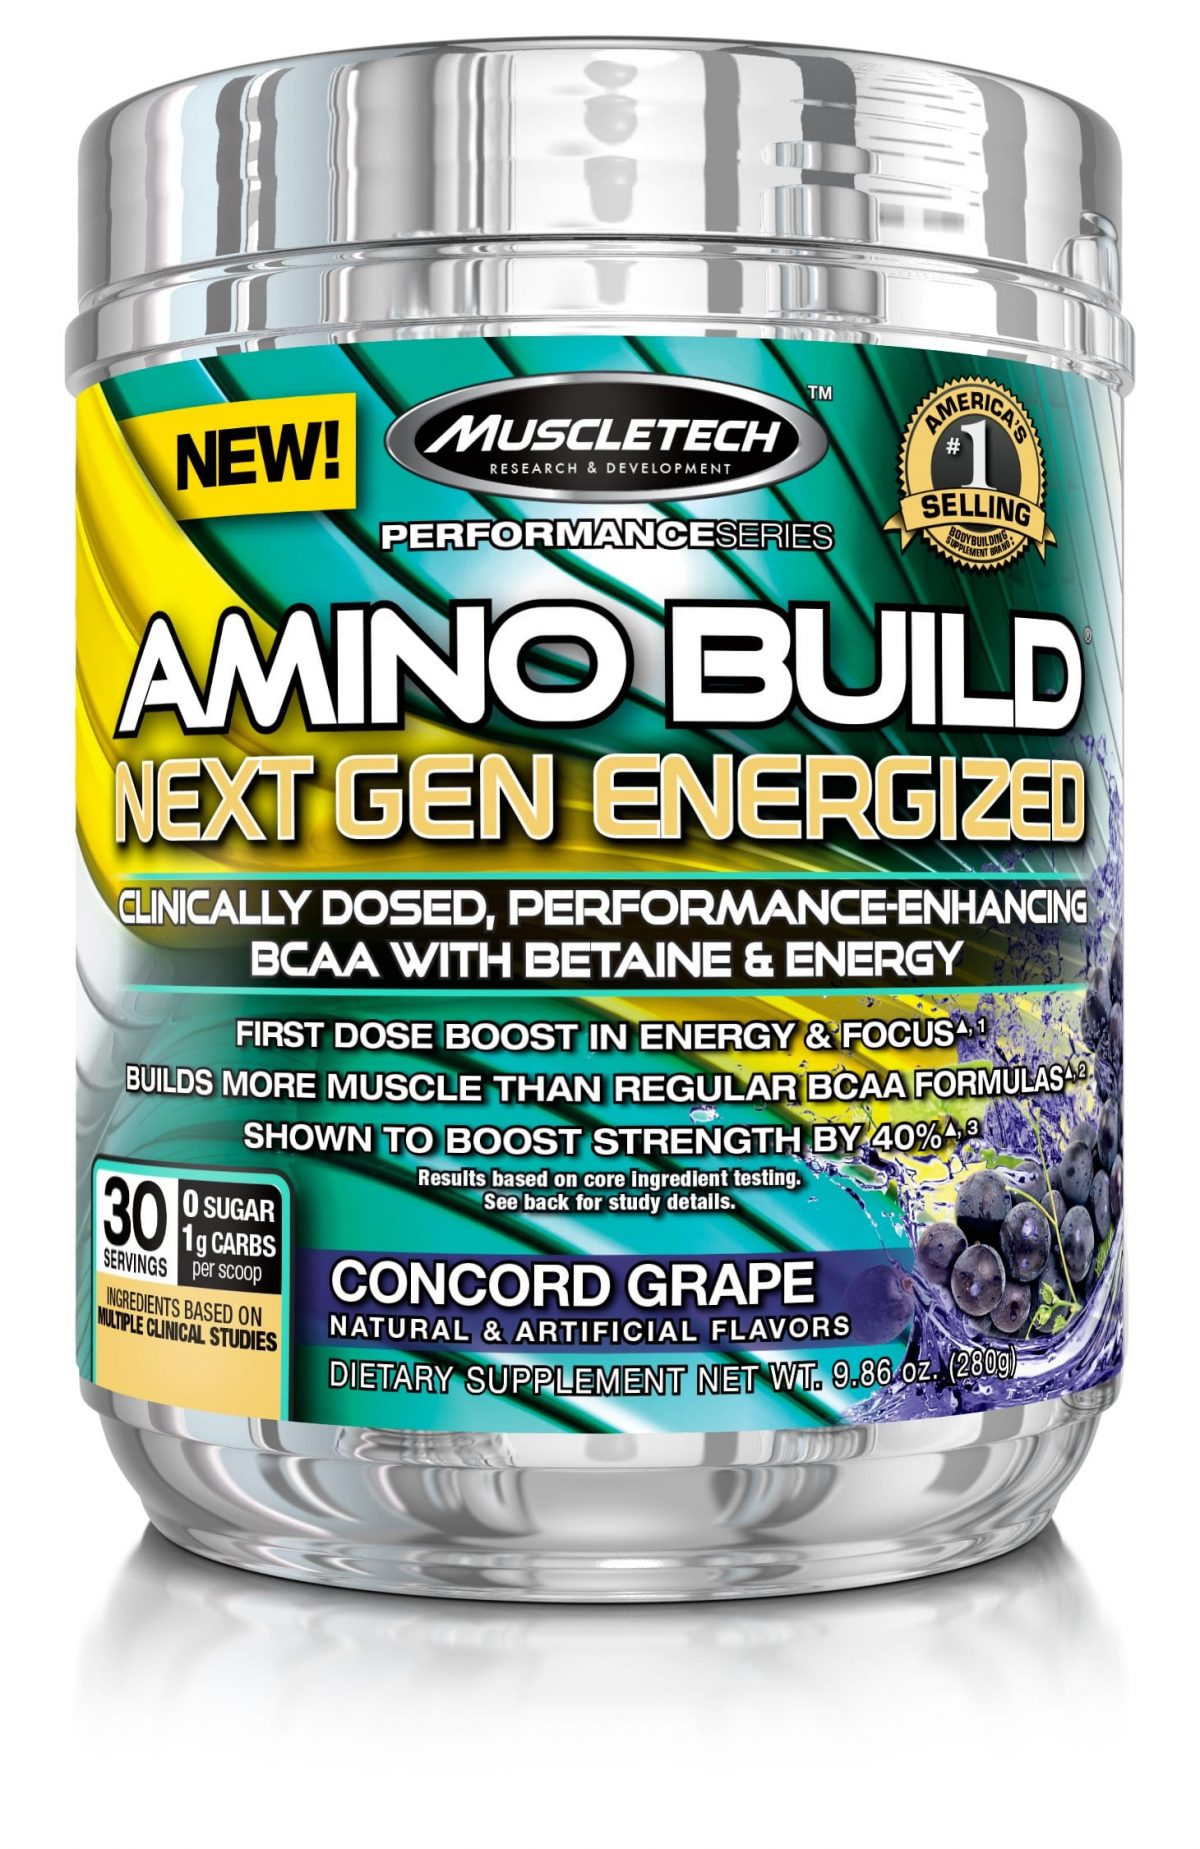 MuscleTech Amino Build Energized - Concord Grape - 30 servings